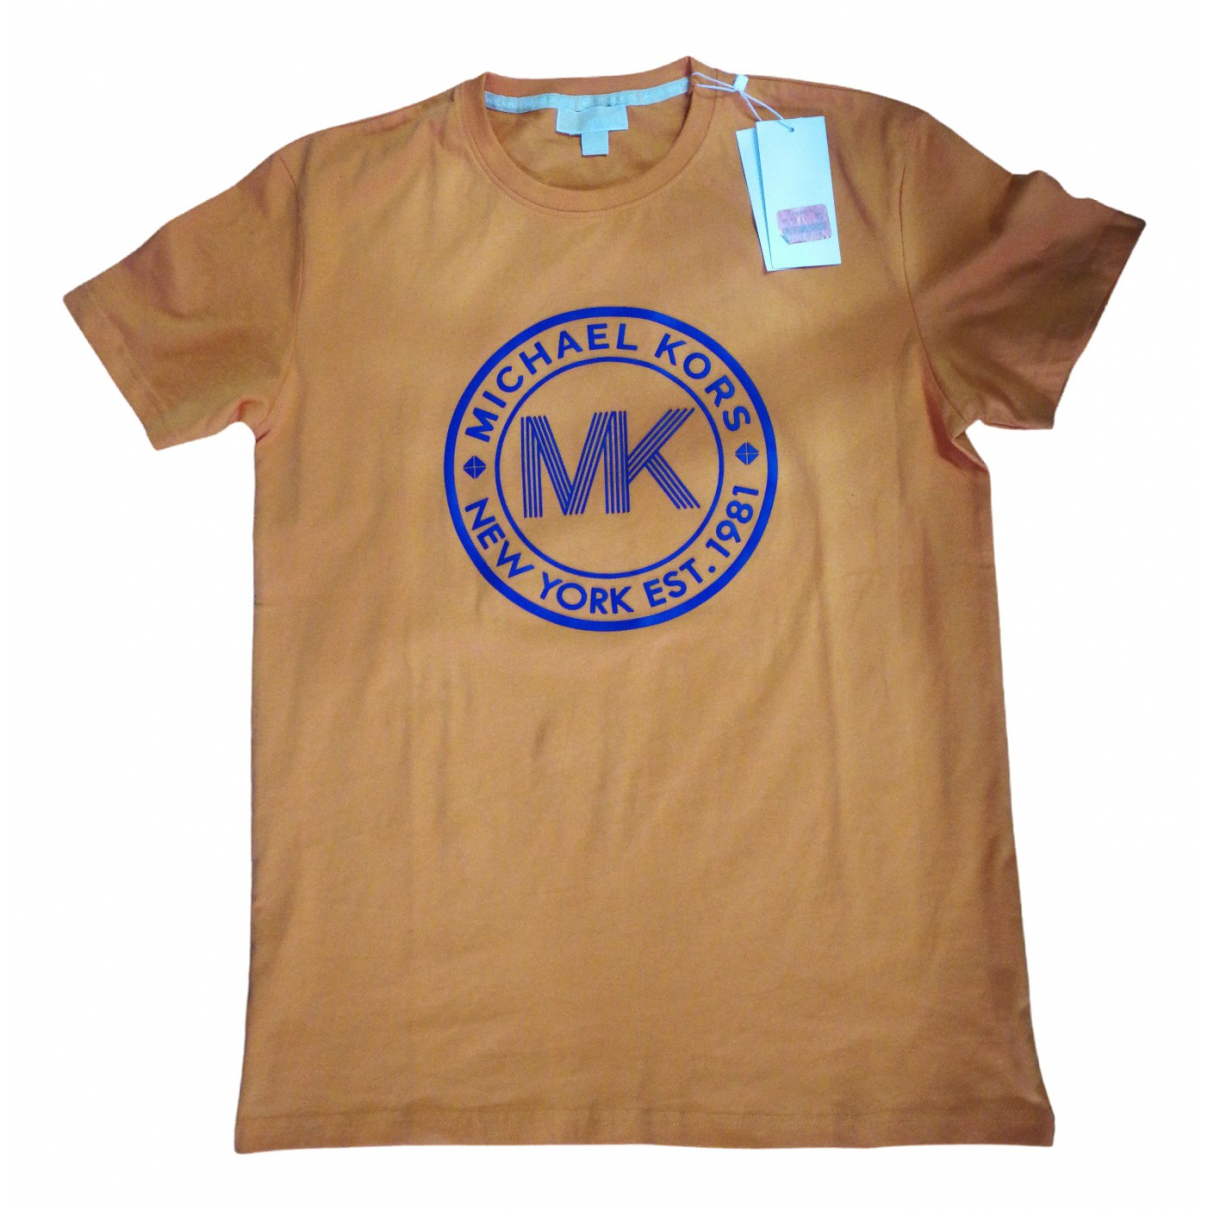 Michael Kors - Tee shirts   pour homme en coton - orange